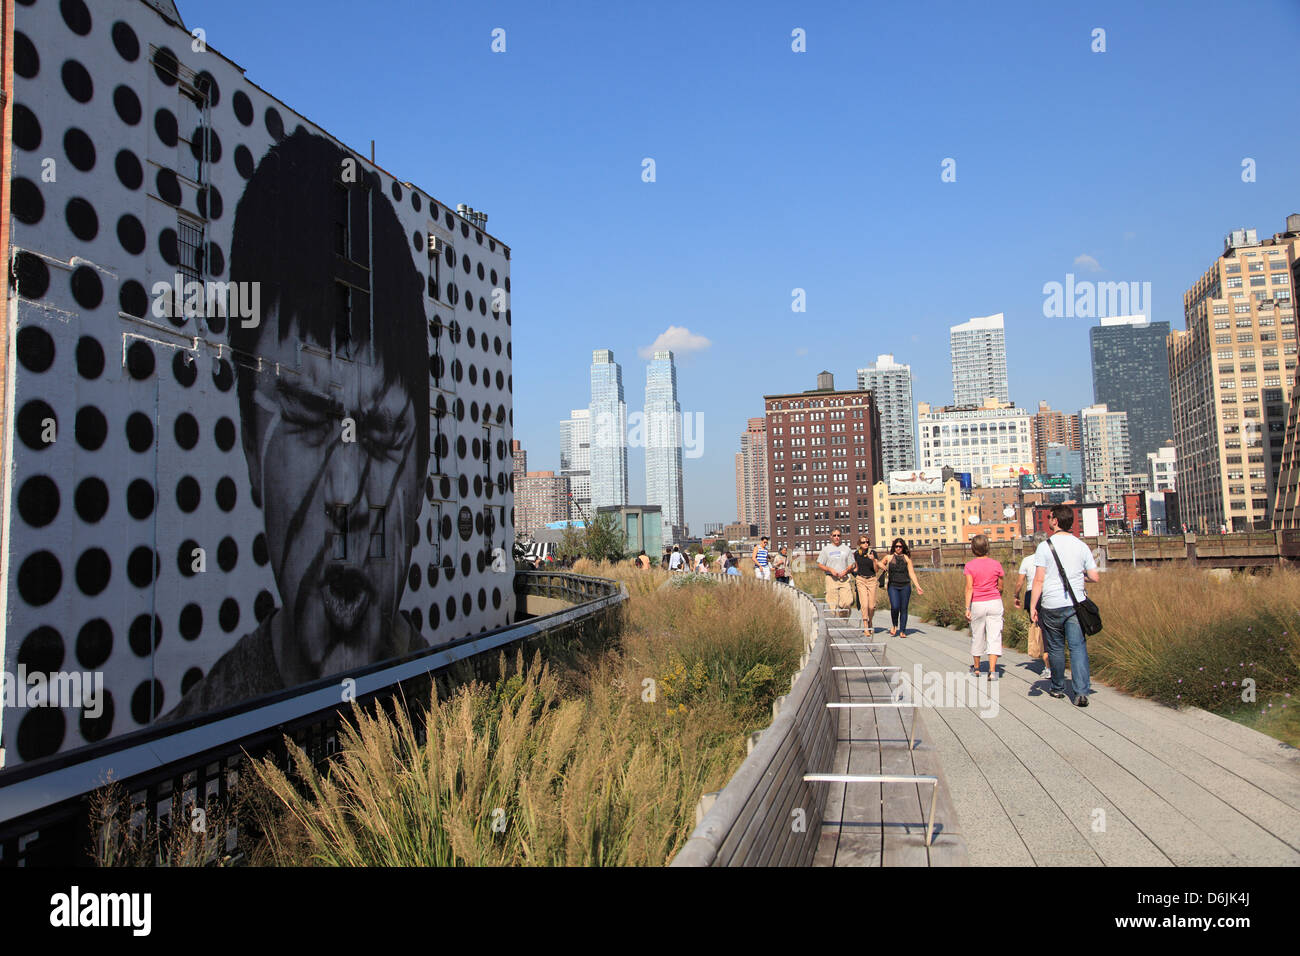 High Line Park, elevated public park on former rail tracks, Manhattan, New York City, United States of America, - Stock Image